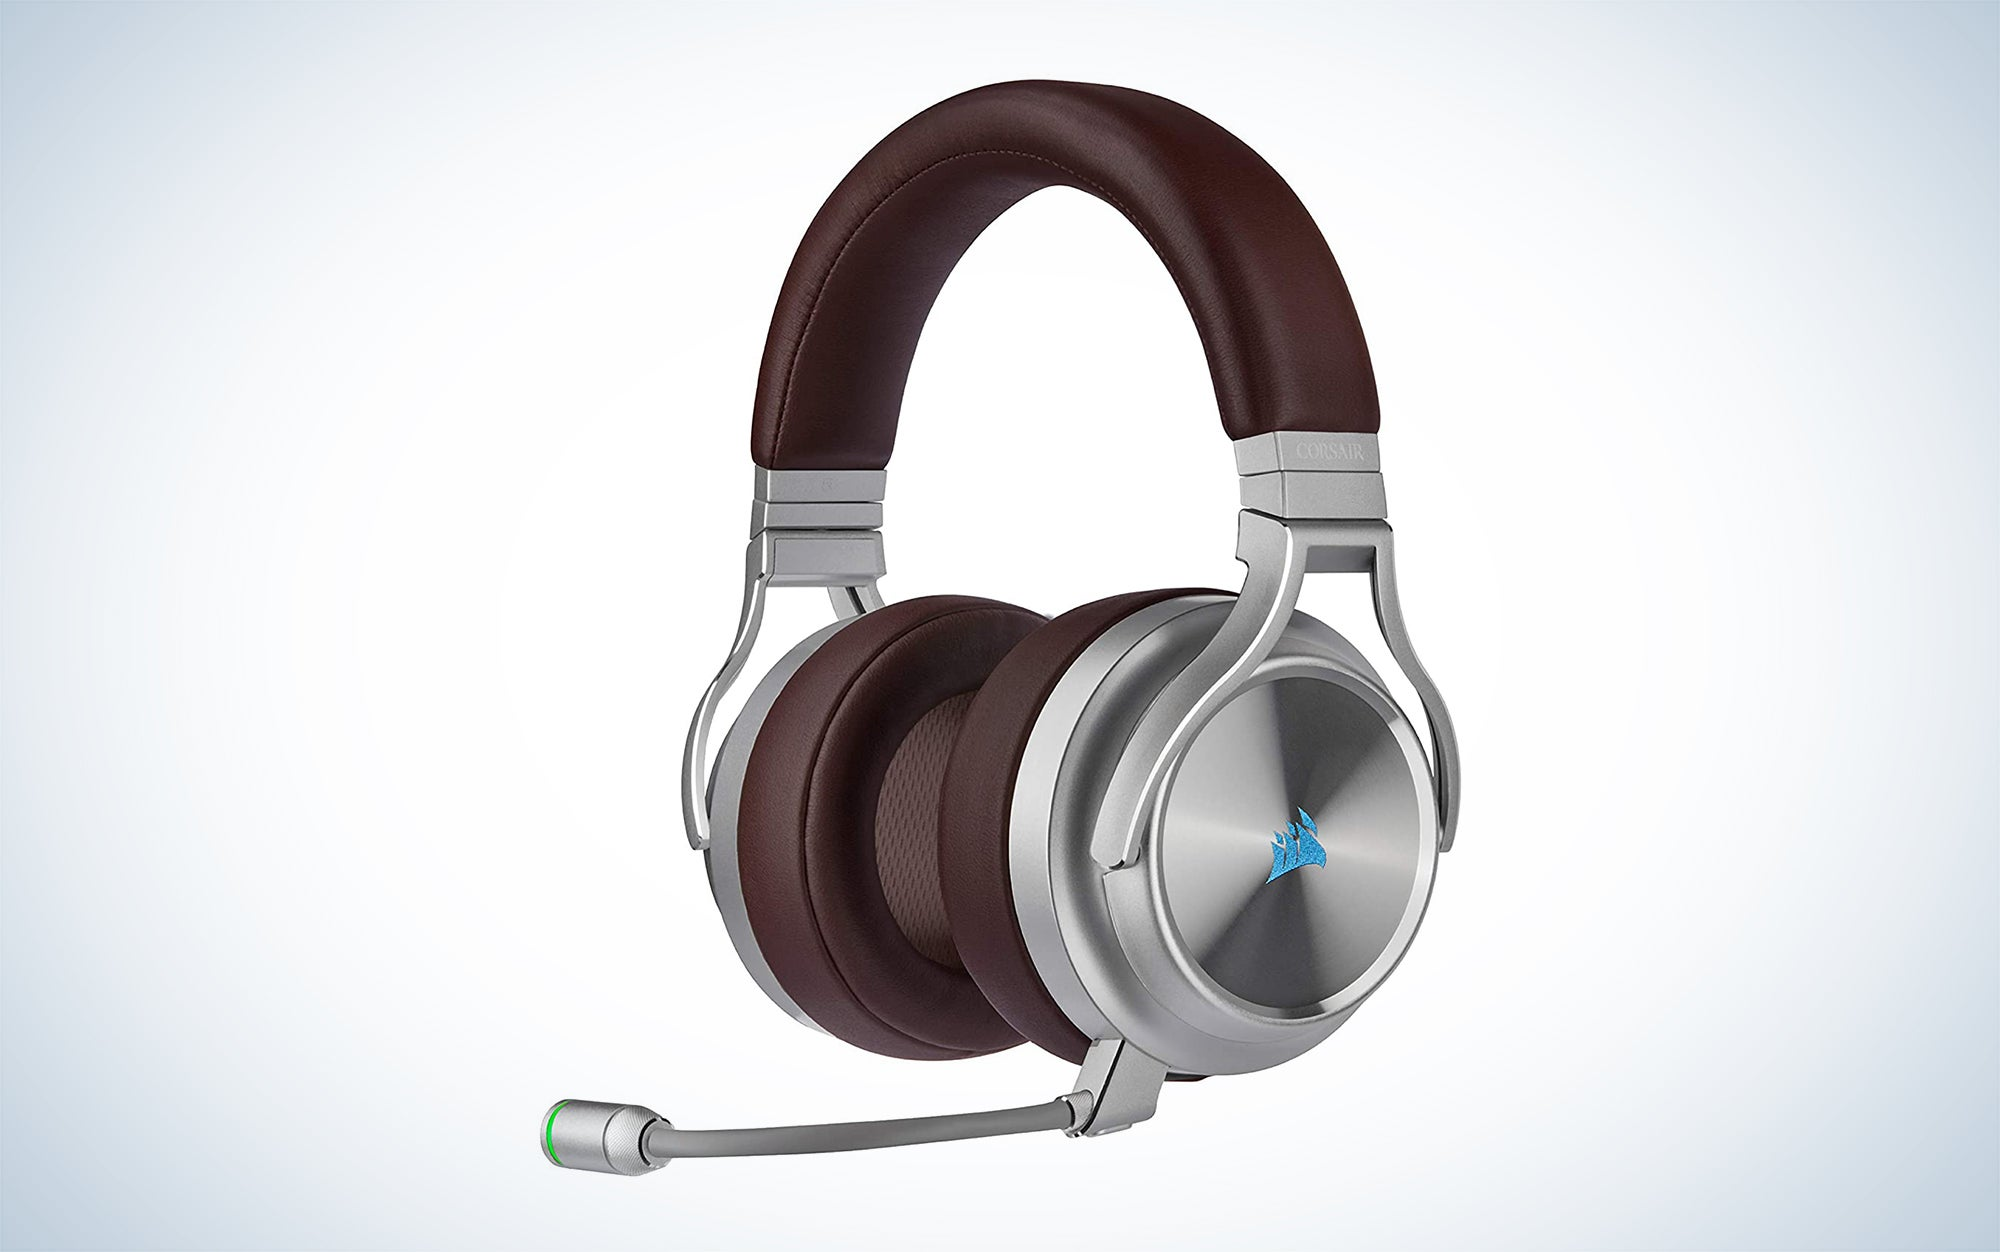 Corsair Virtuoso RGB Wireless SE Gaming Headset is the best gaming headset microphone.